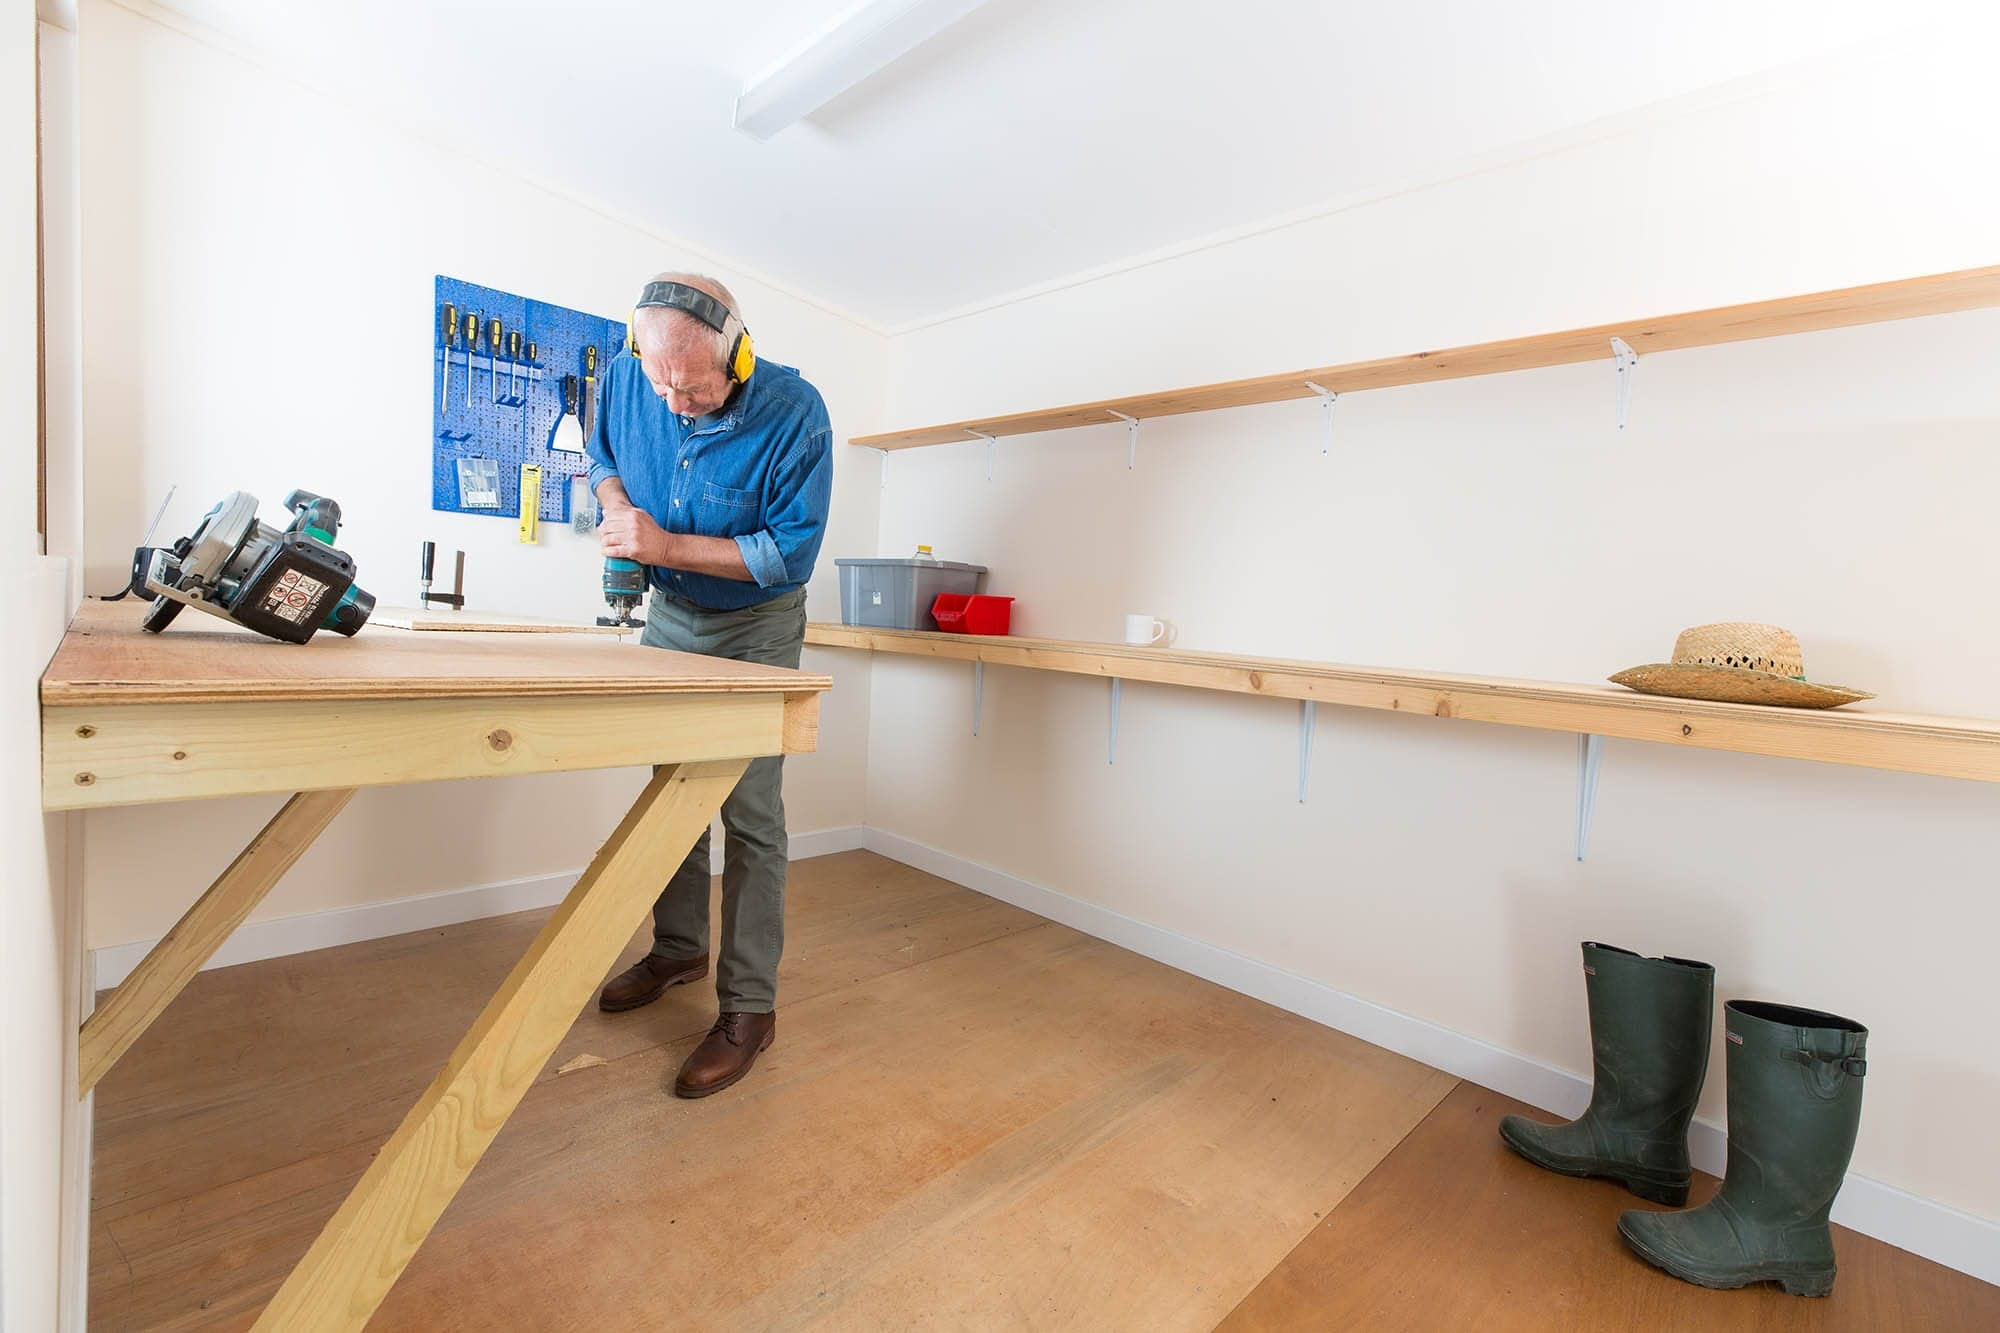 Add worktop and shelves to your workshop